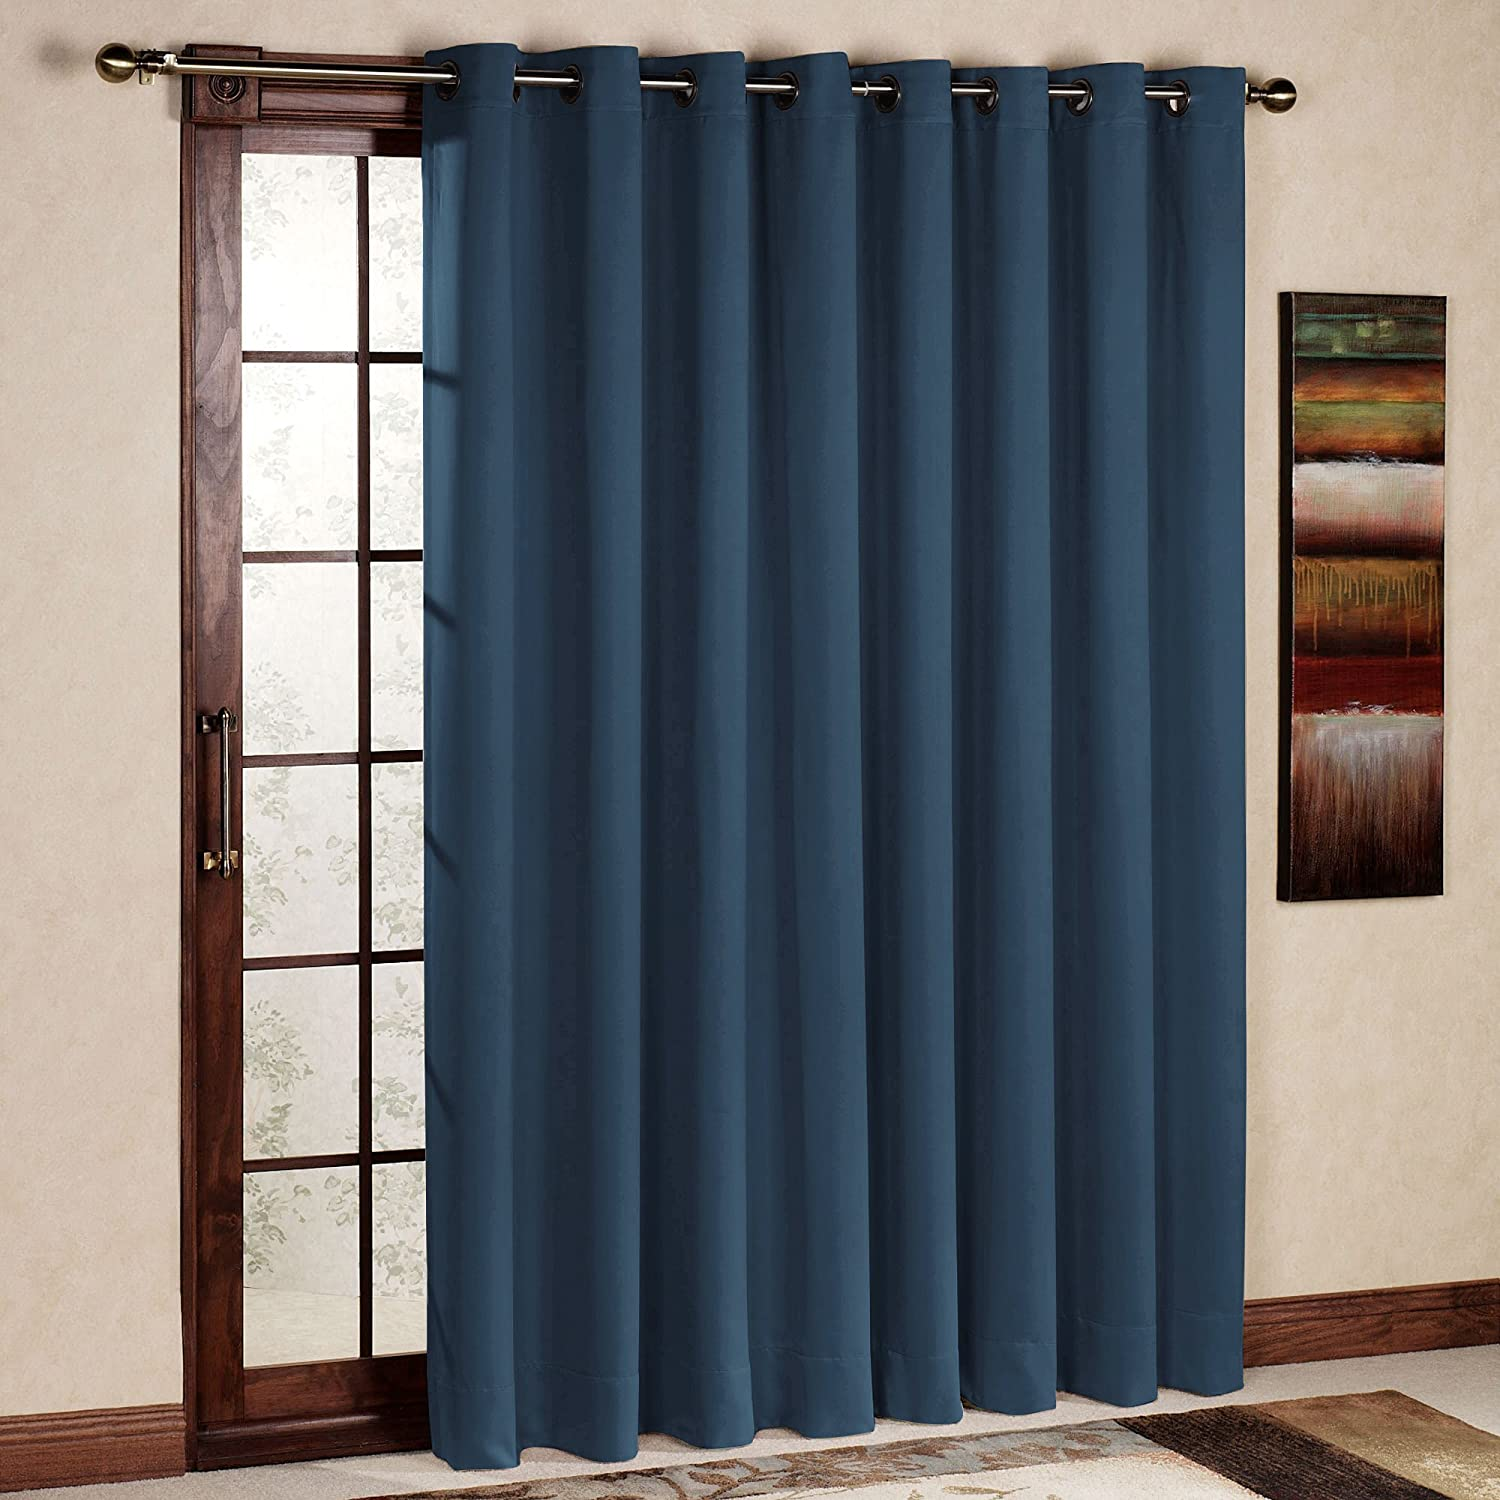 doors for curtains curtain shades sliding of best rods door glass kitchen ideas drapes size phenomenal patio short insight rod full